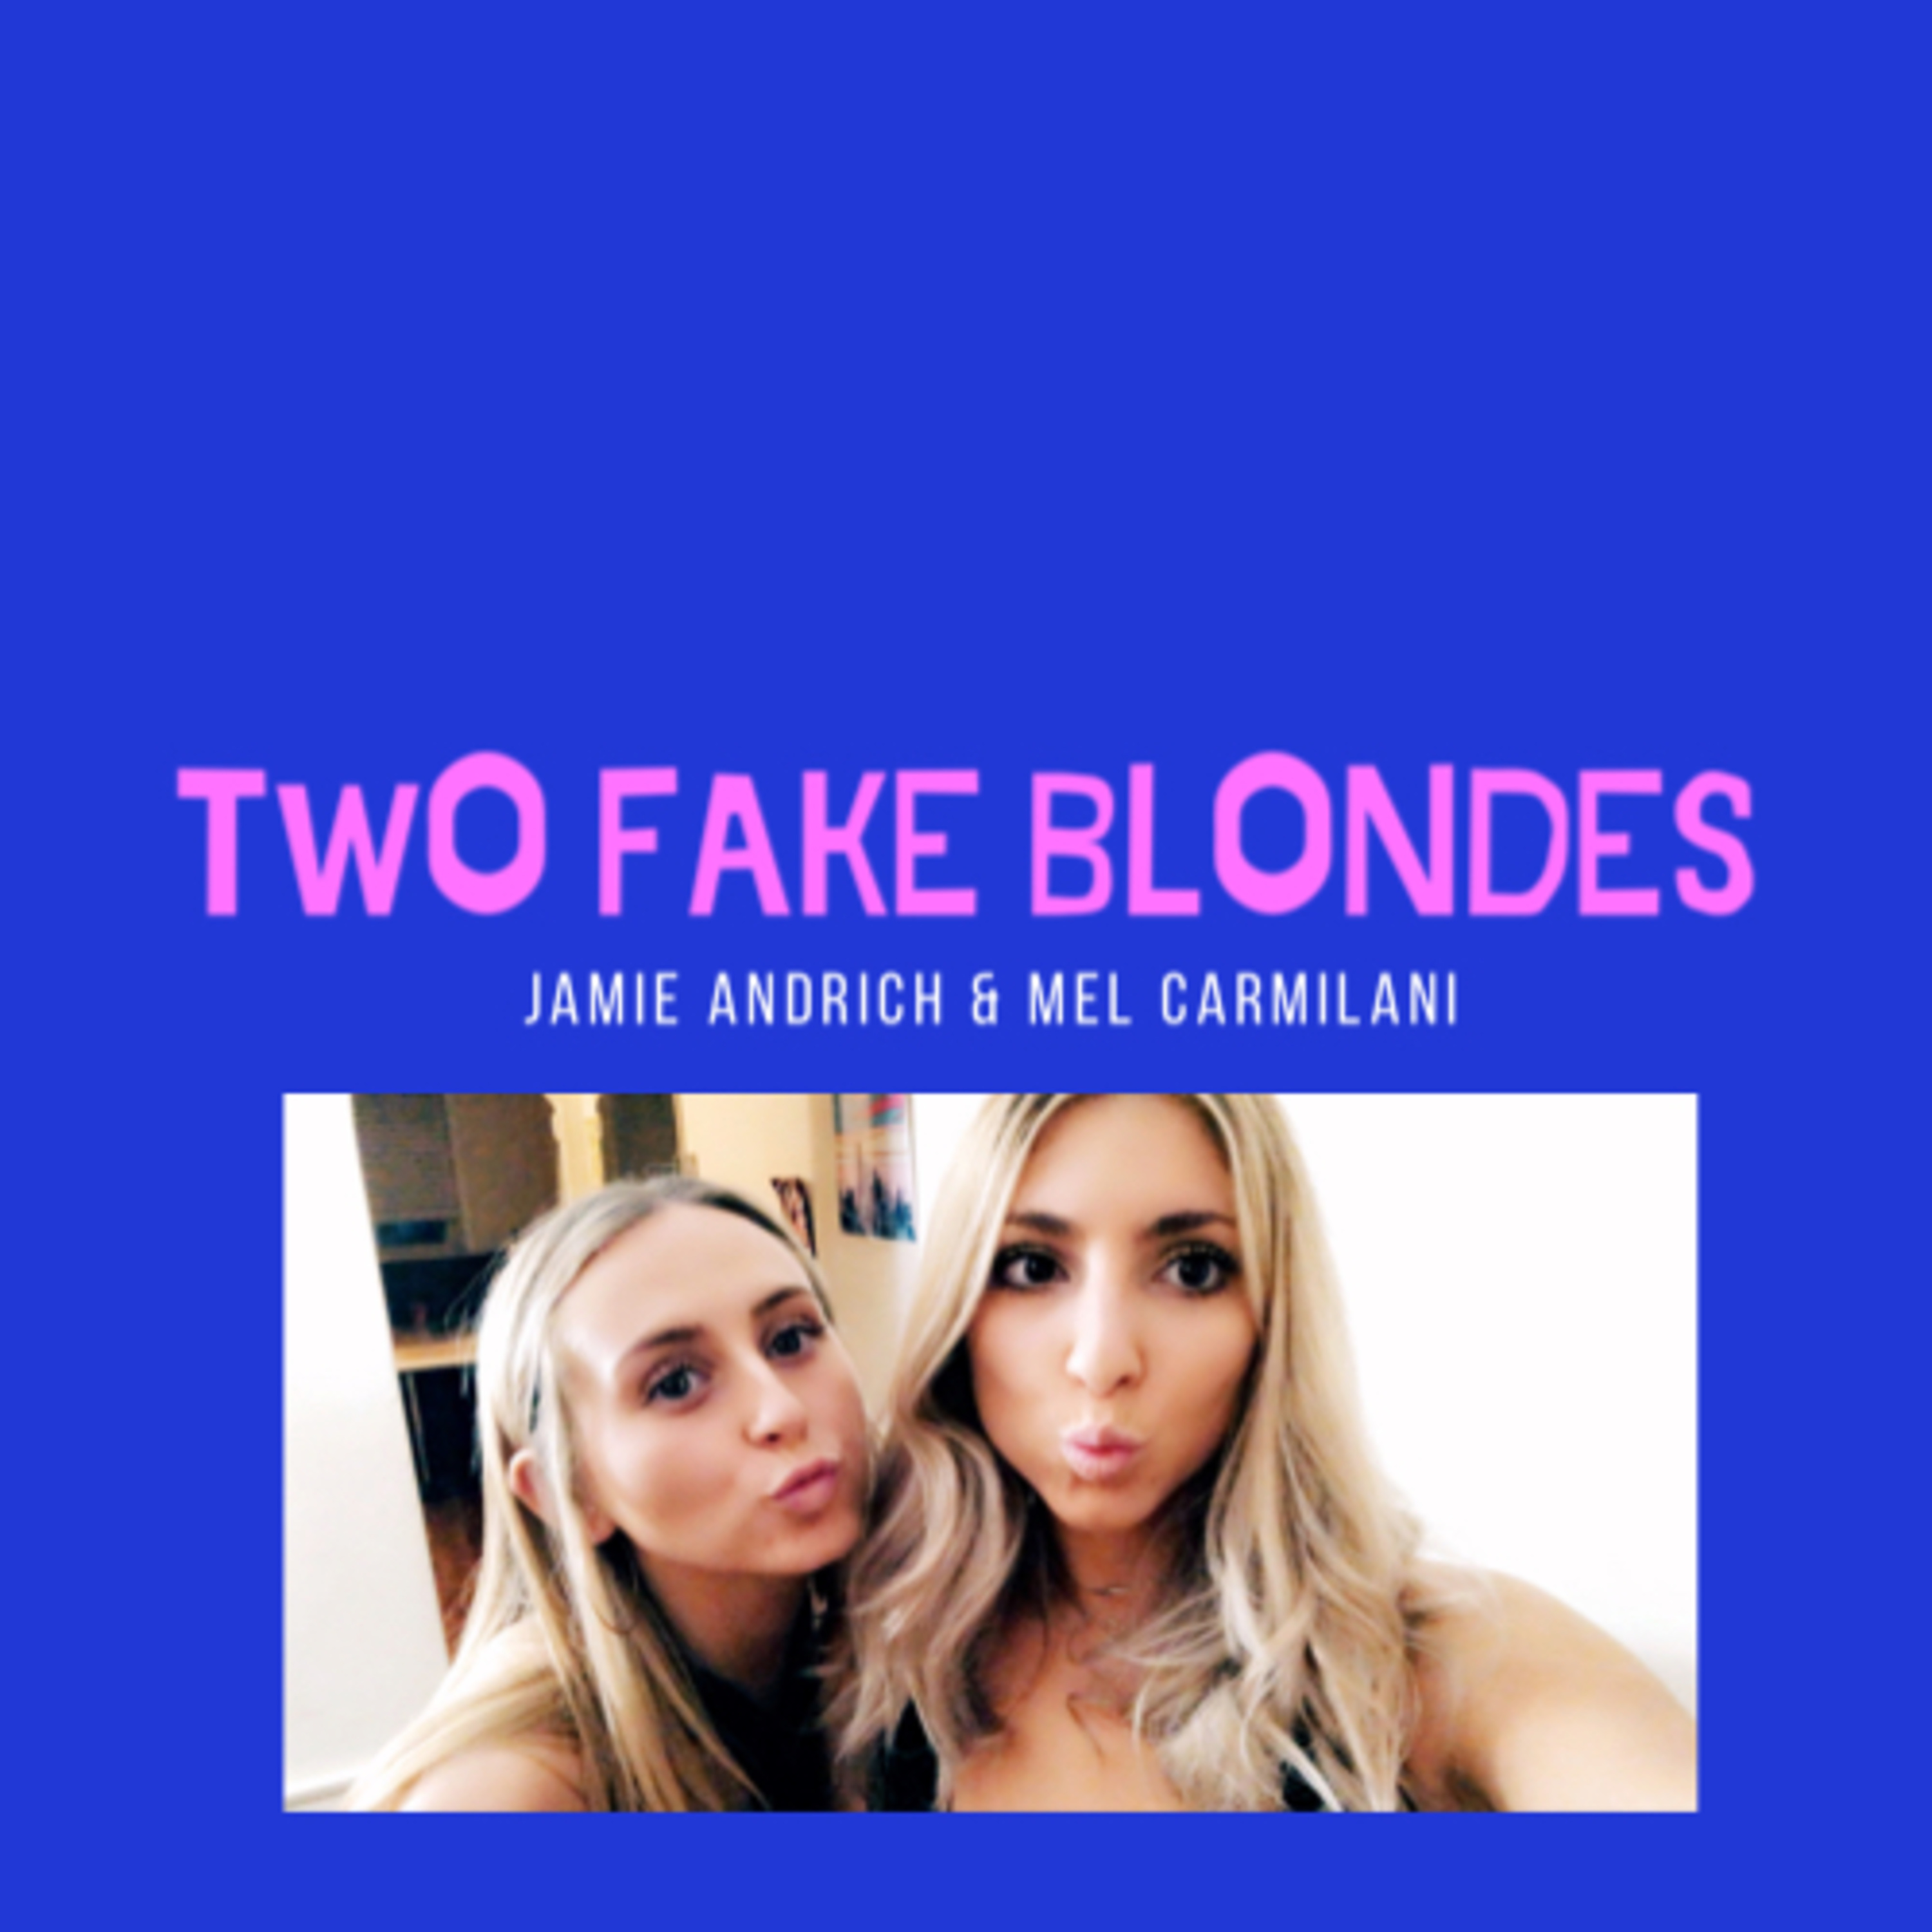 Two Fake Blondes (Trailer)